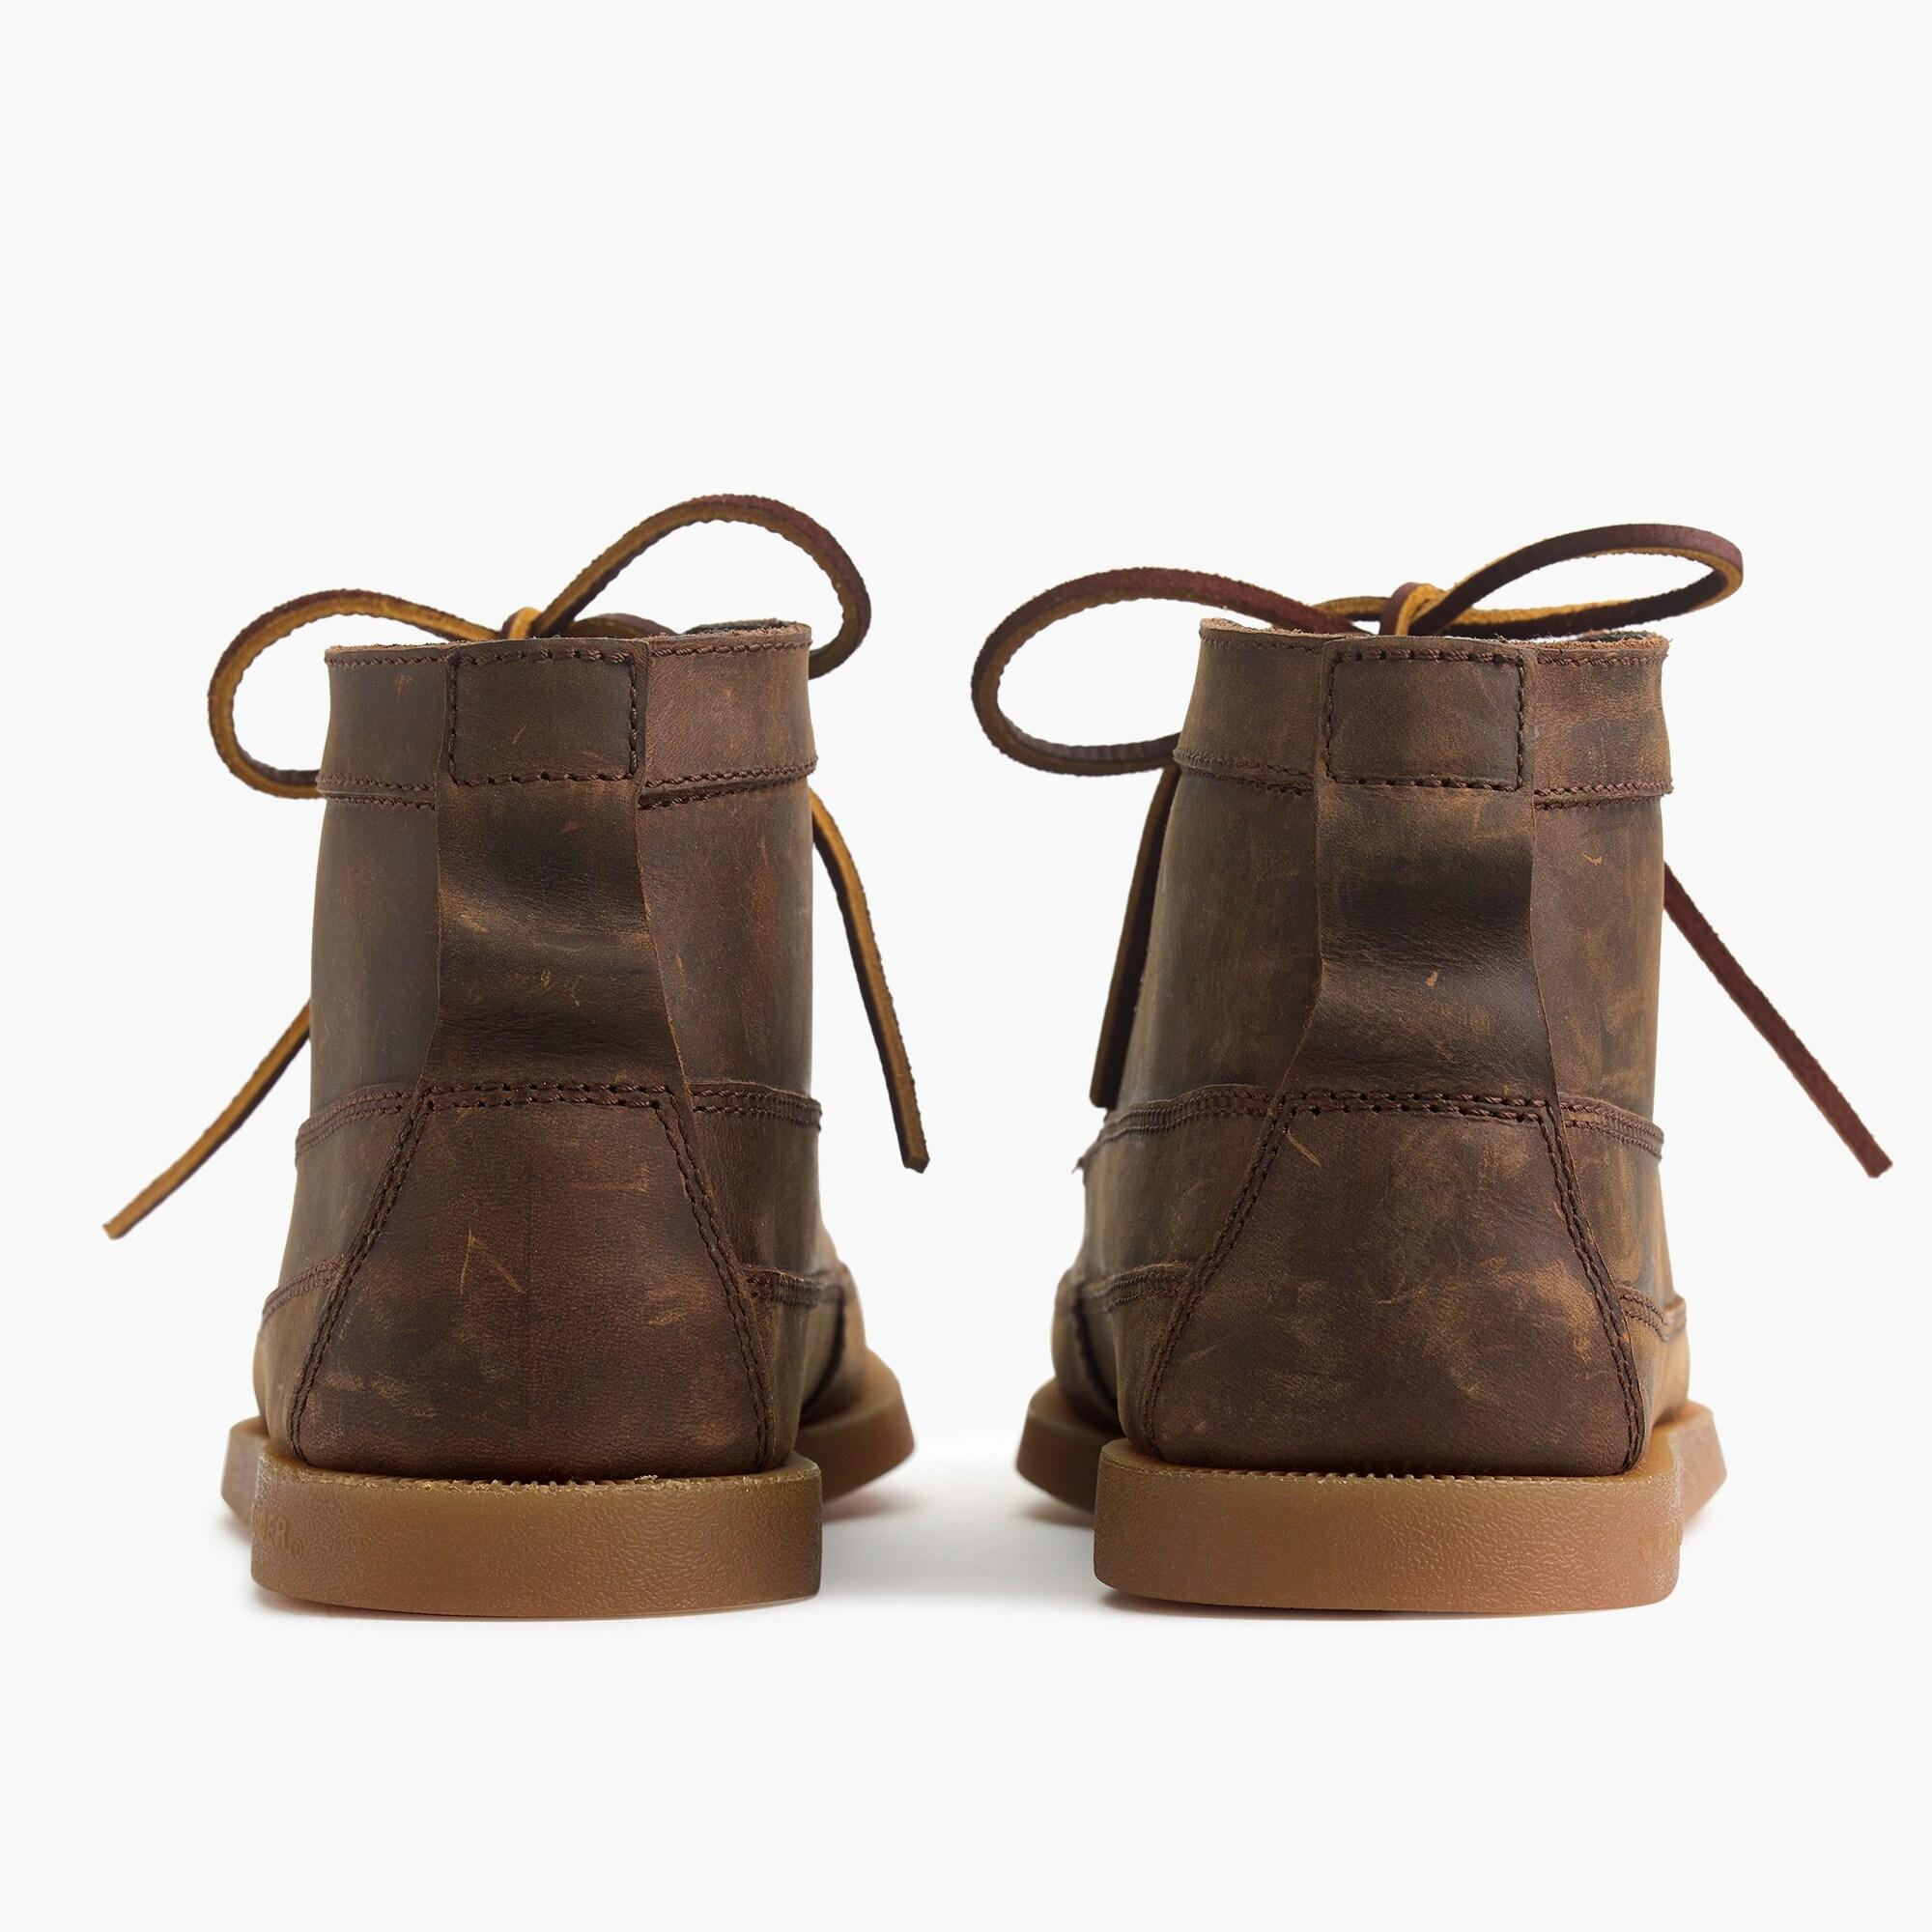 Leather ® For J.crew Chukka Boots